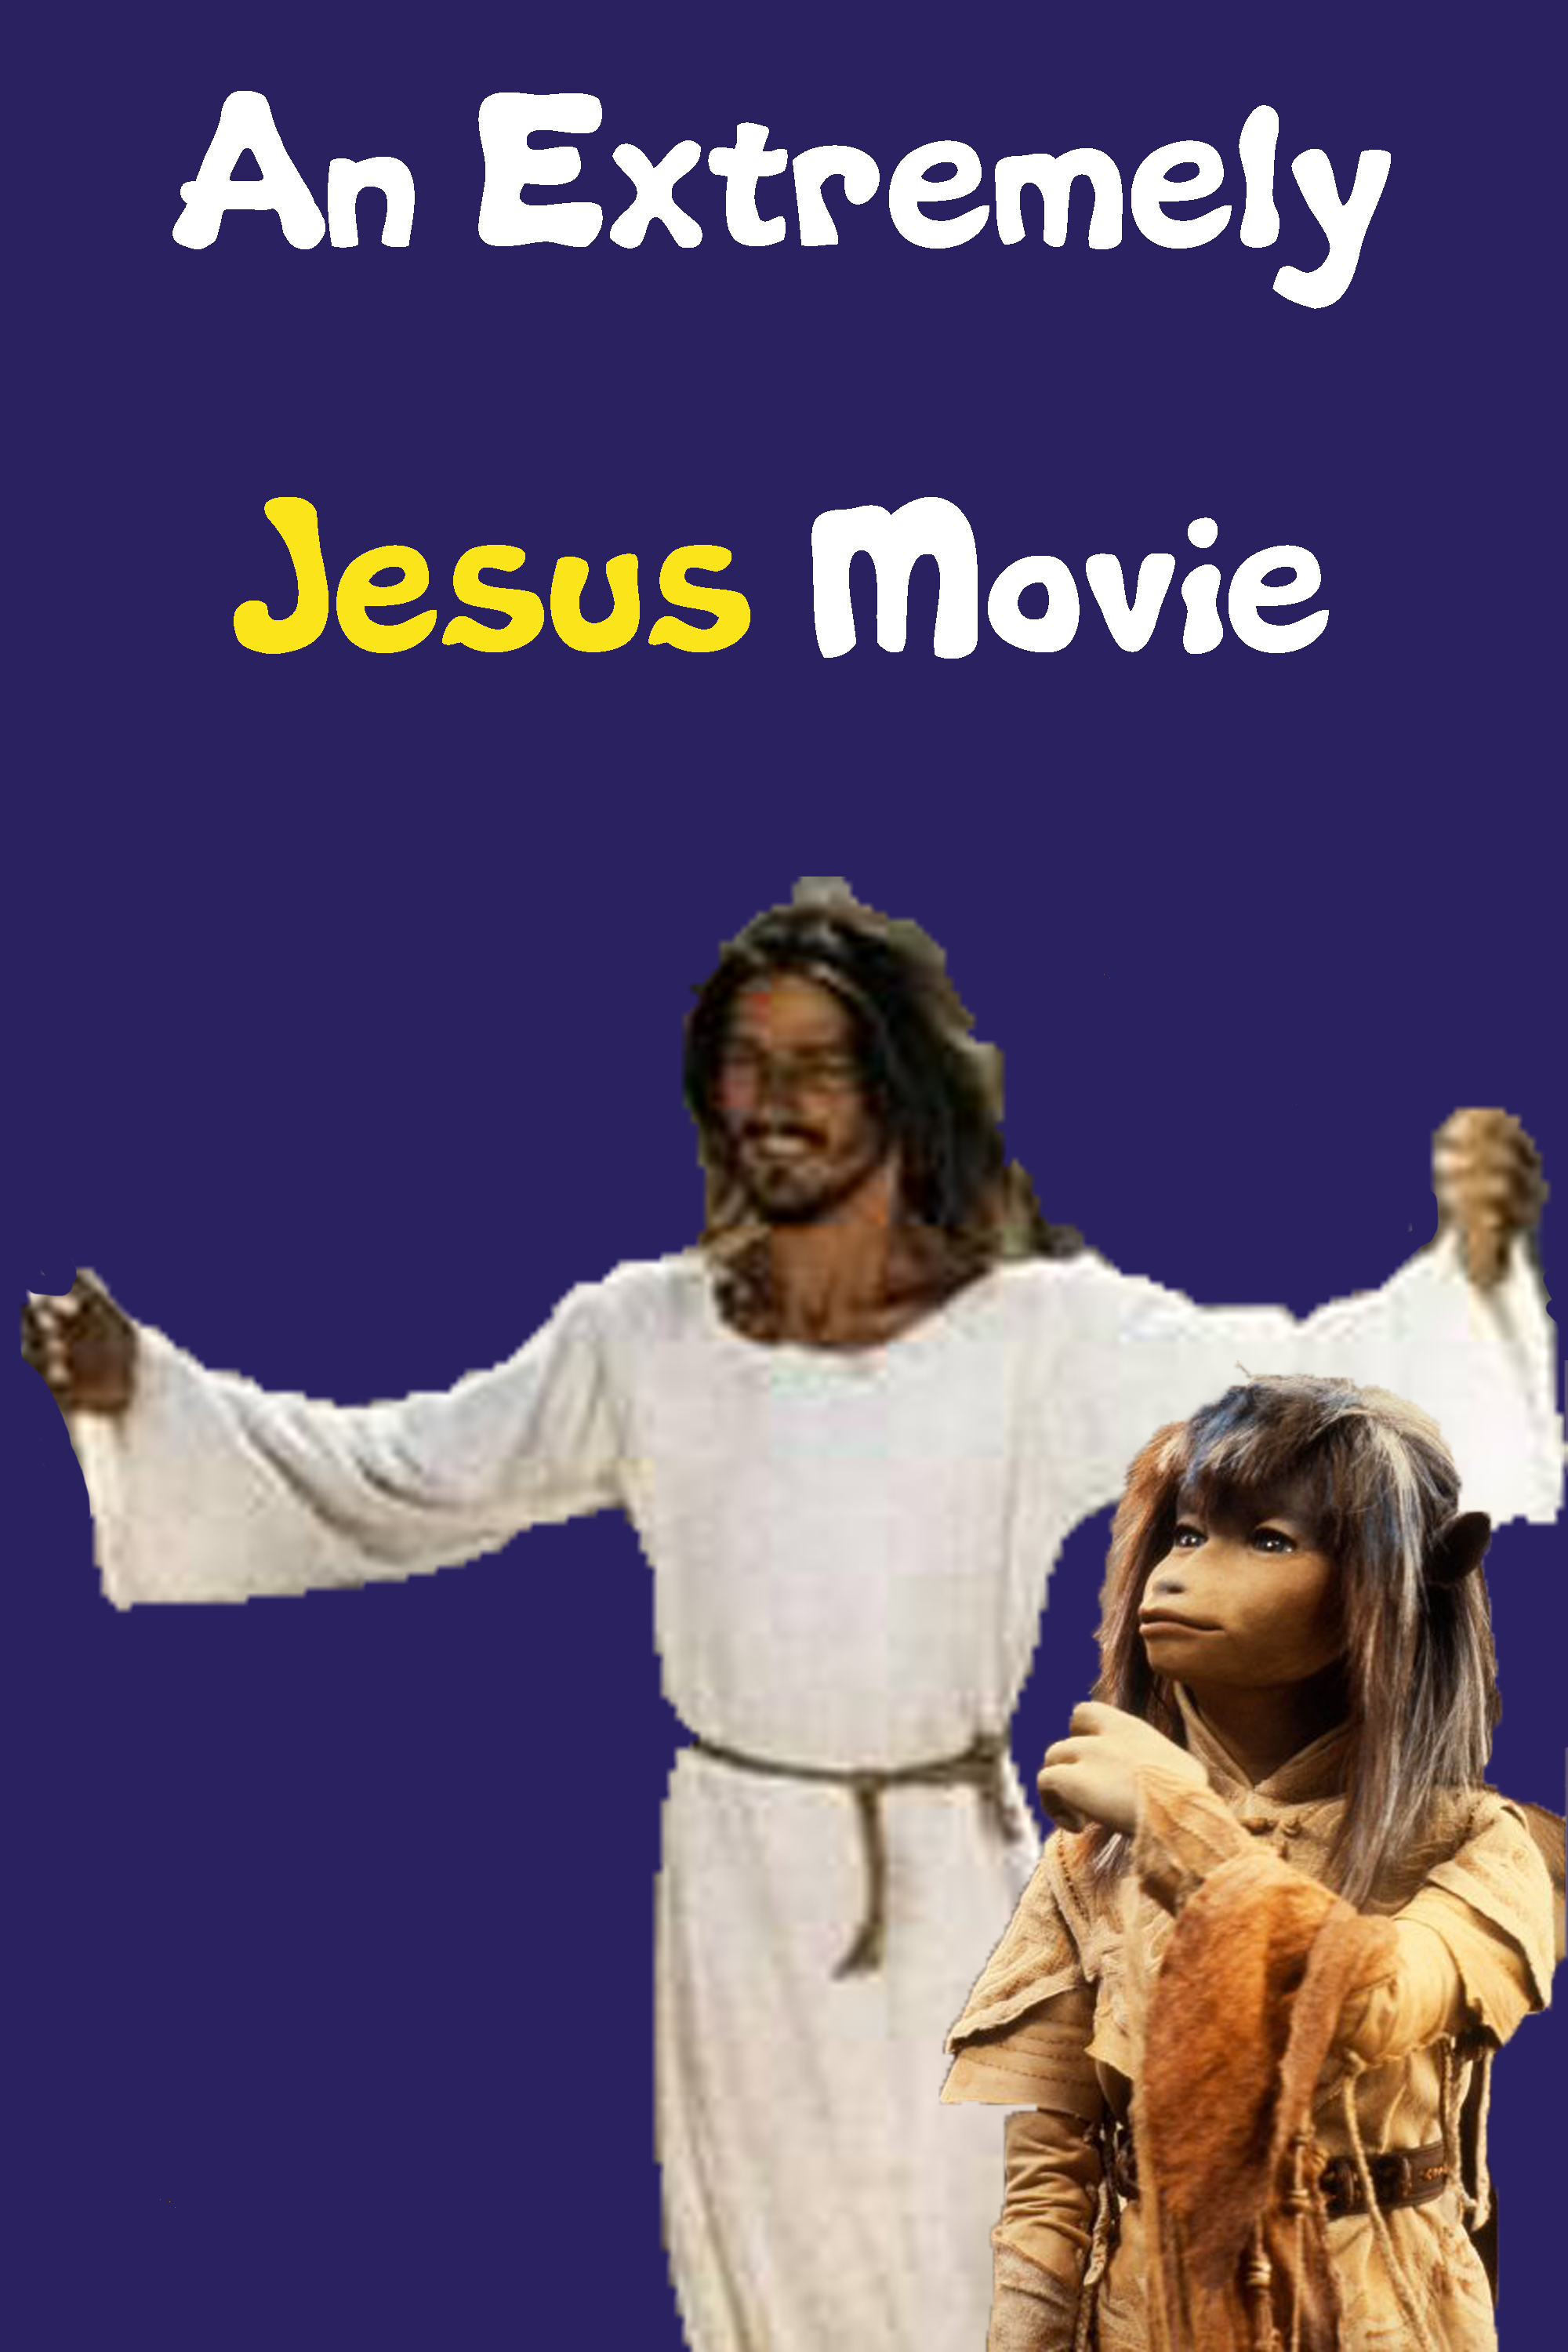 An Extremely Jesus Movie